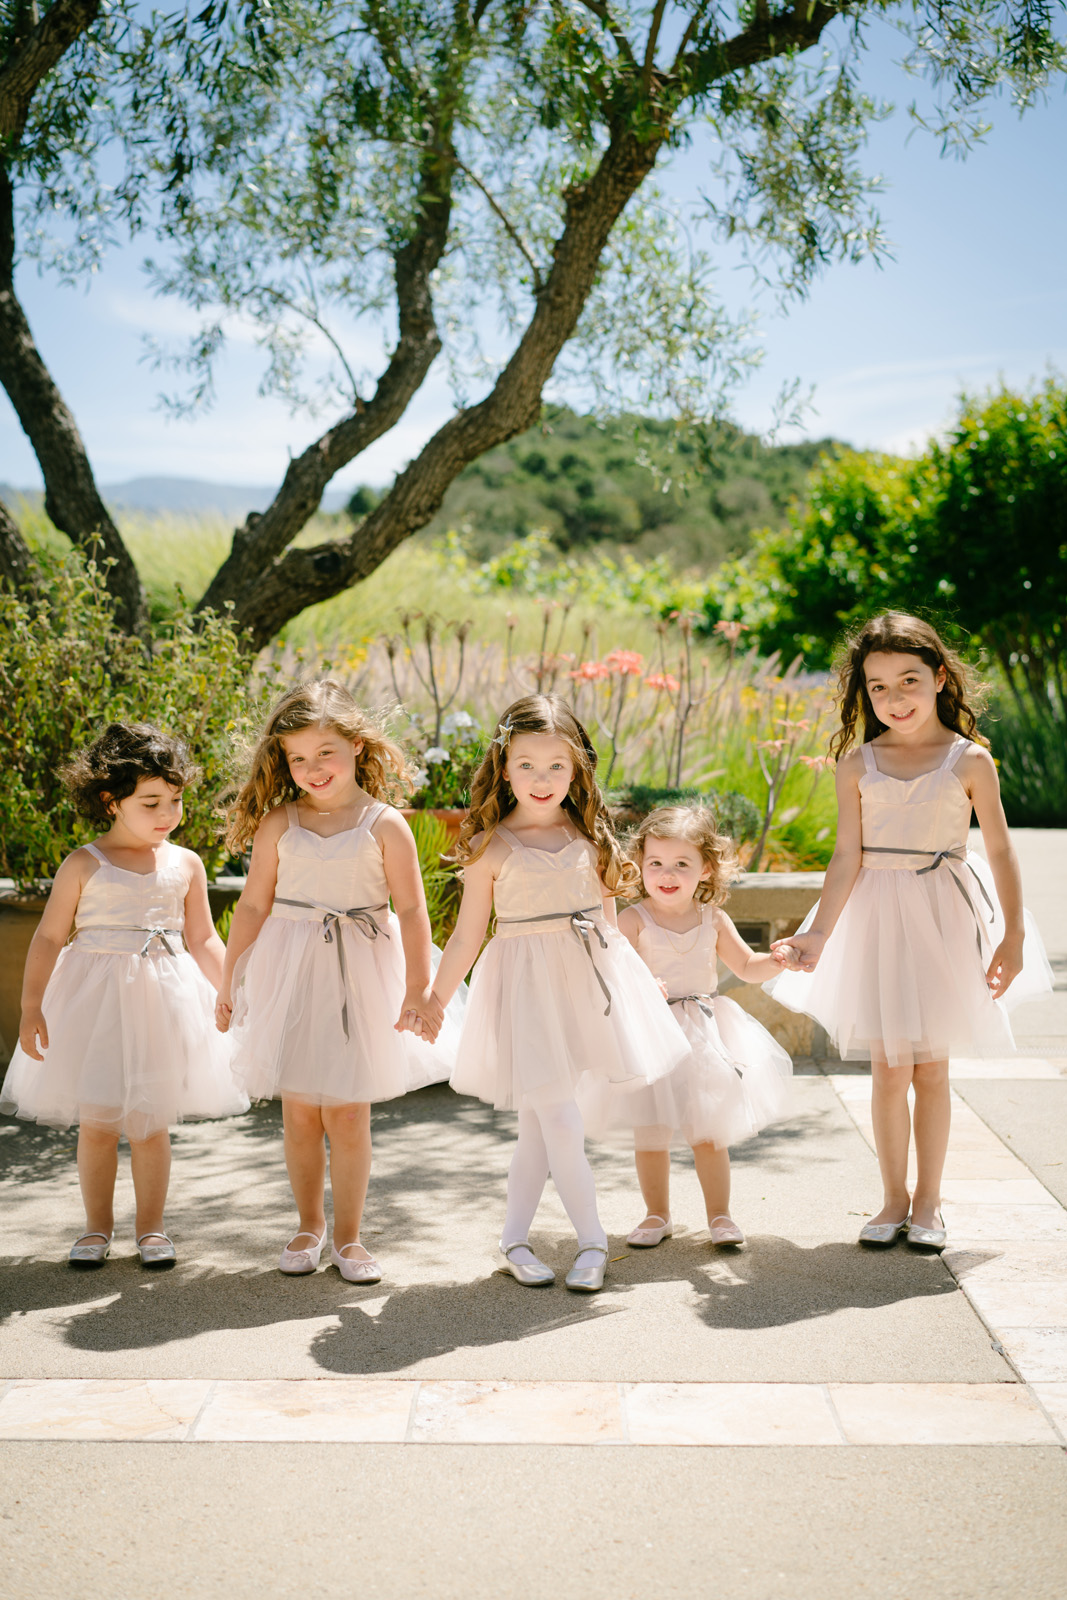 Flower girls holding hands with ribbon belts at outdoor wedding